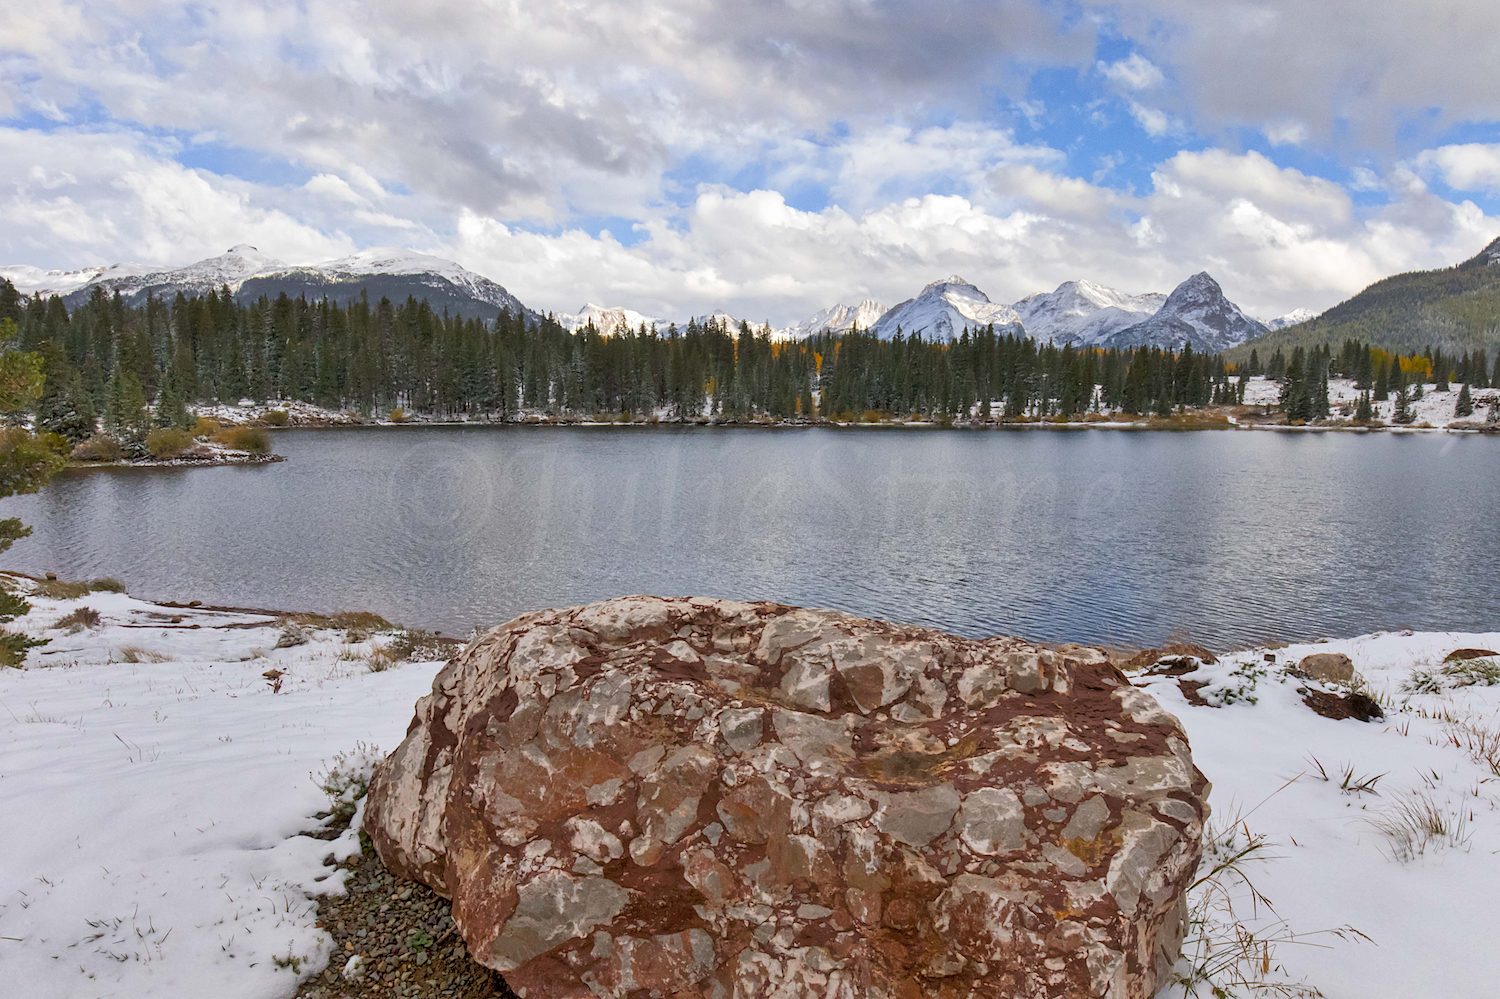 Molas Lake, Image # 0378